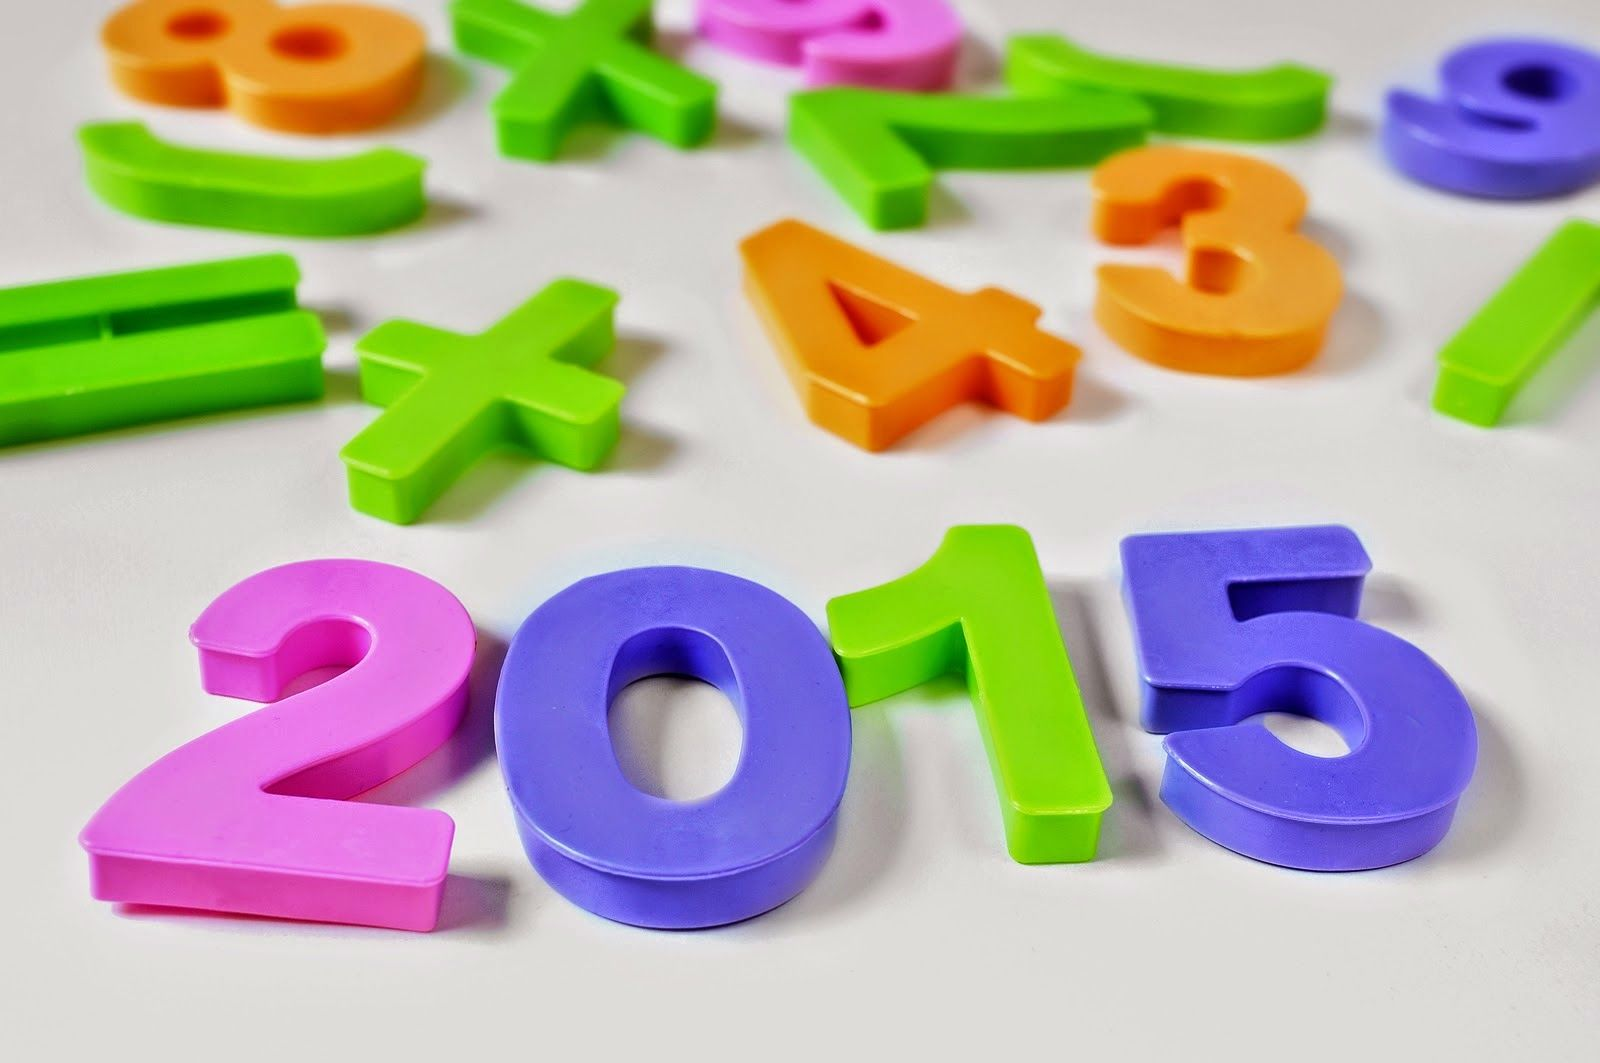 Happy New Year 2015 Quotes(http://www.happynewyear2015quotes.com/) Happy New Year 2015 - Providing with best happy new year HD wallpapers, Messages, Quotes, Happy New Year 2015 Greetings, New year 2015 calender, New year history and much more..!!